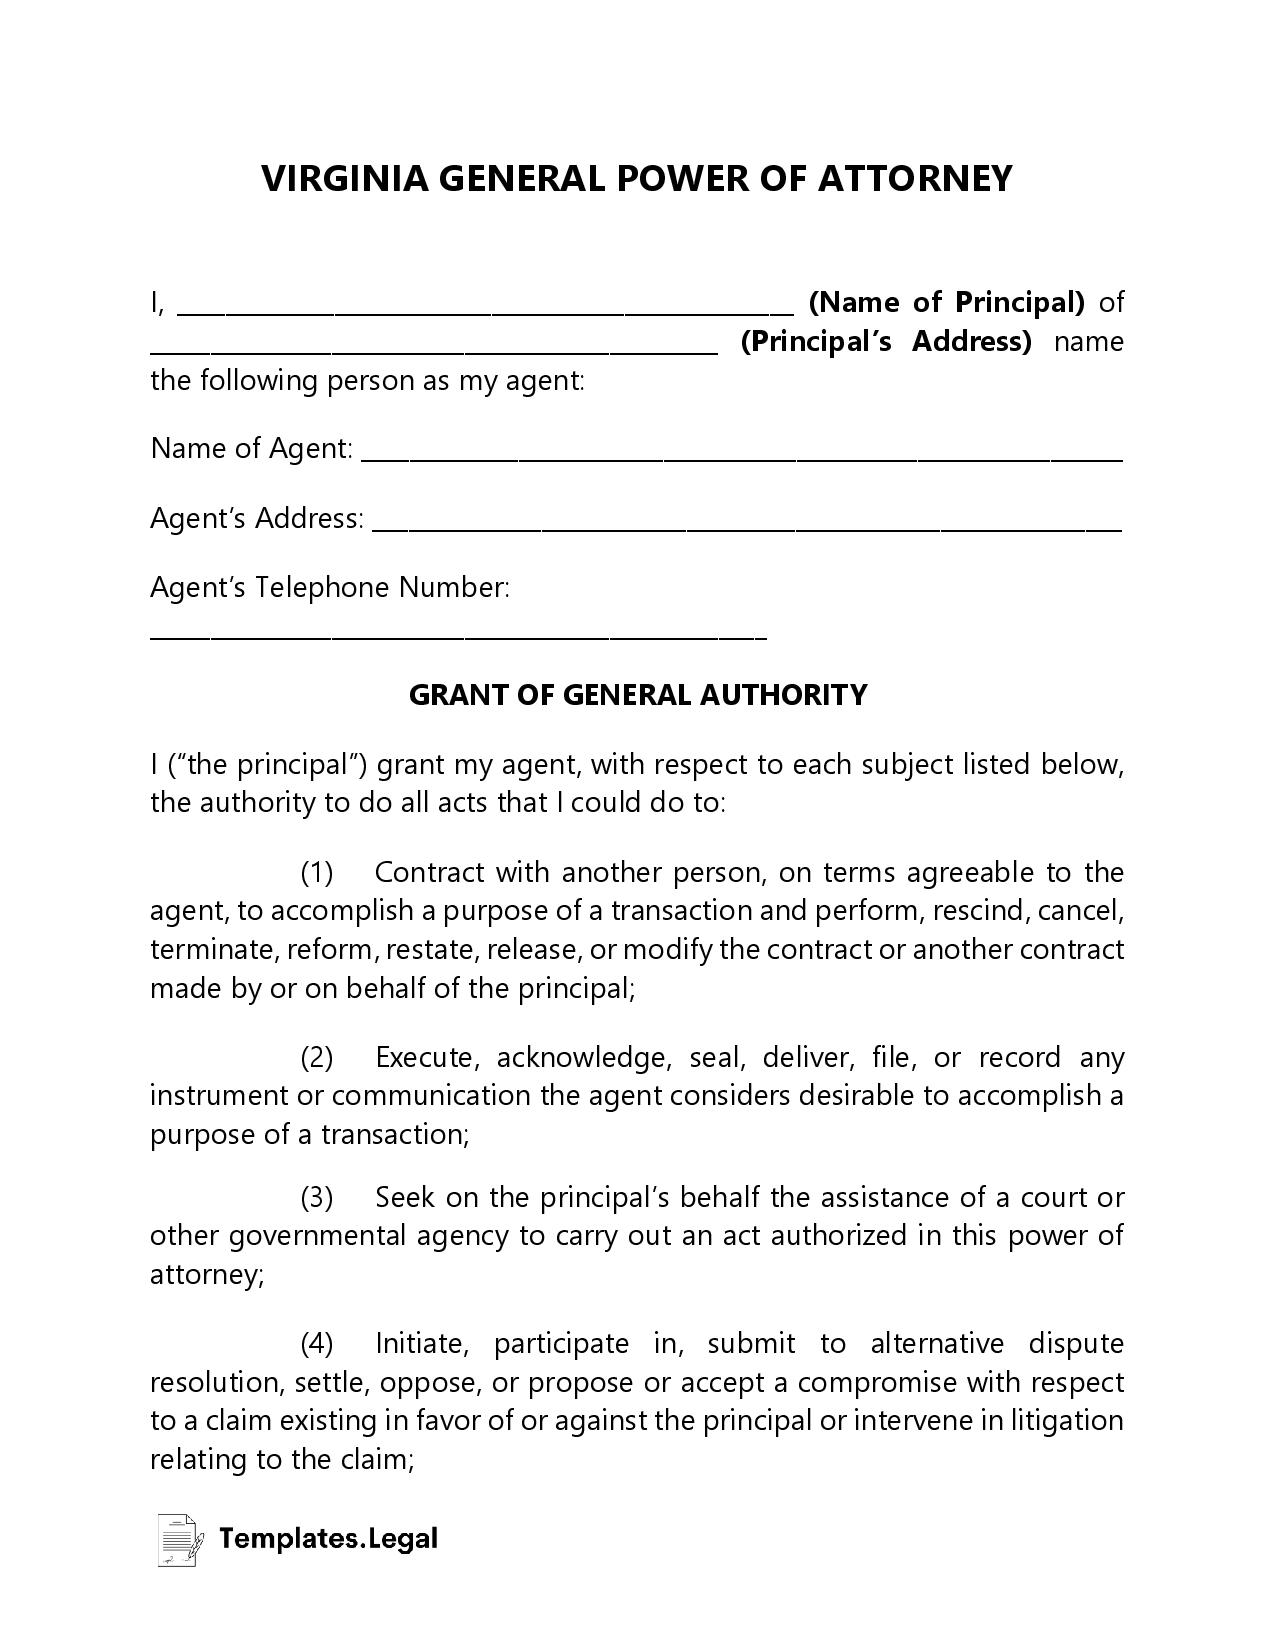 Virginia General Power of Attorney - Templates.Legal